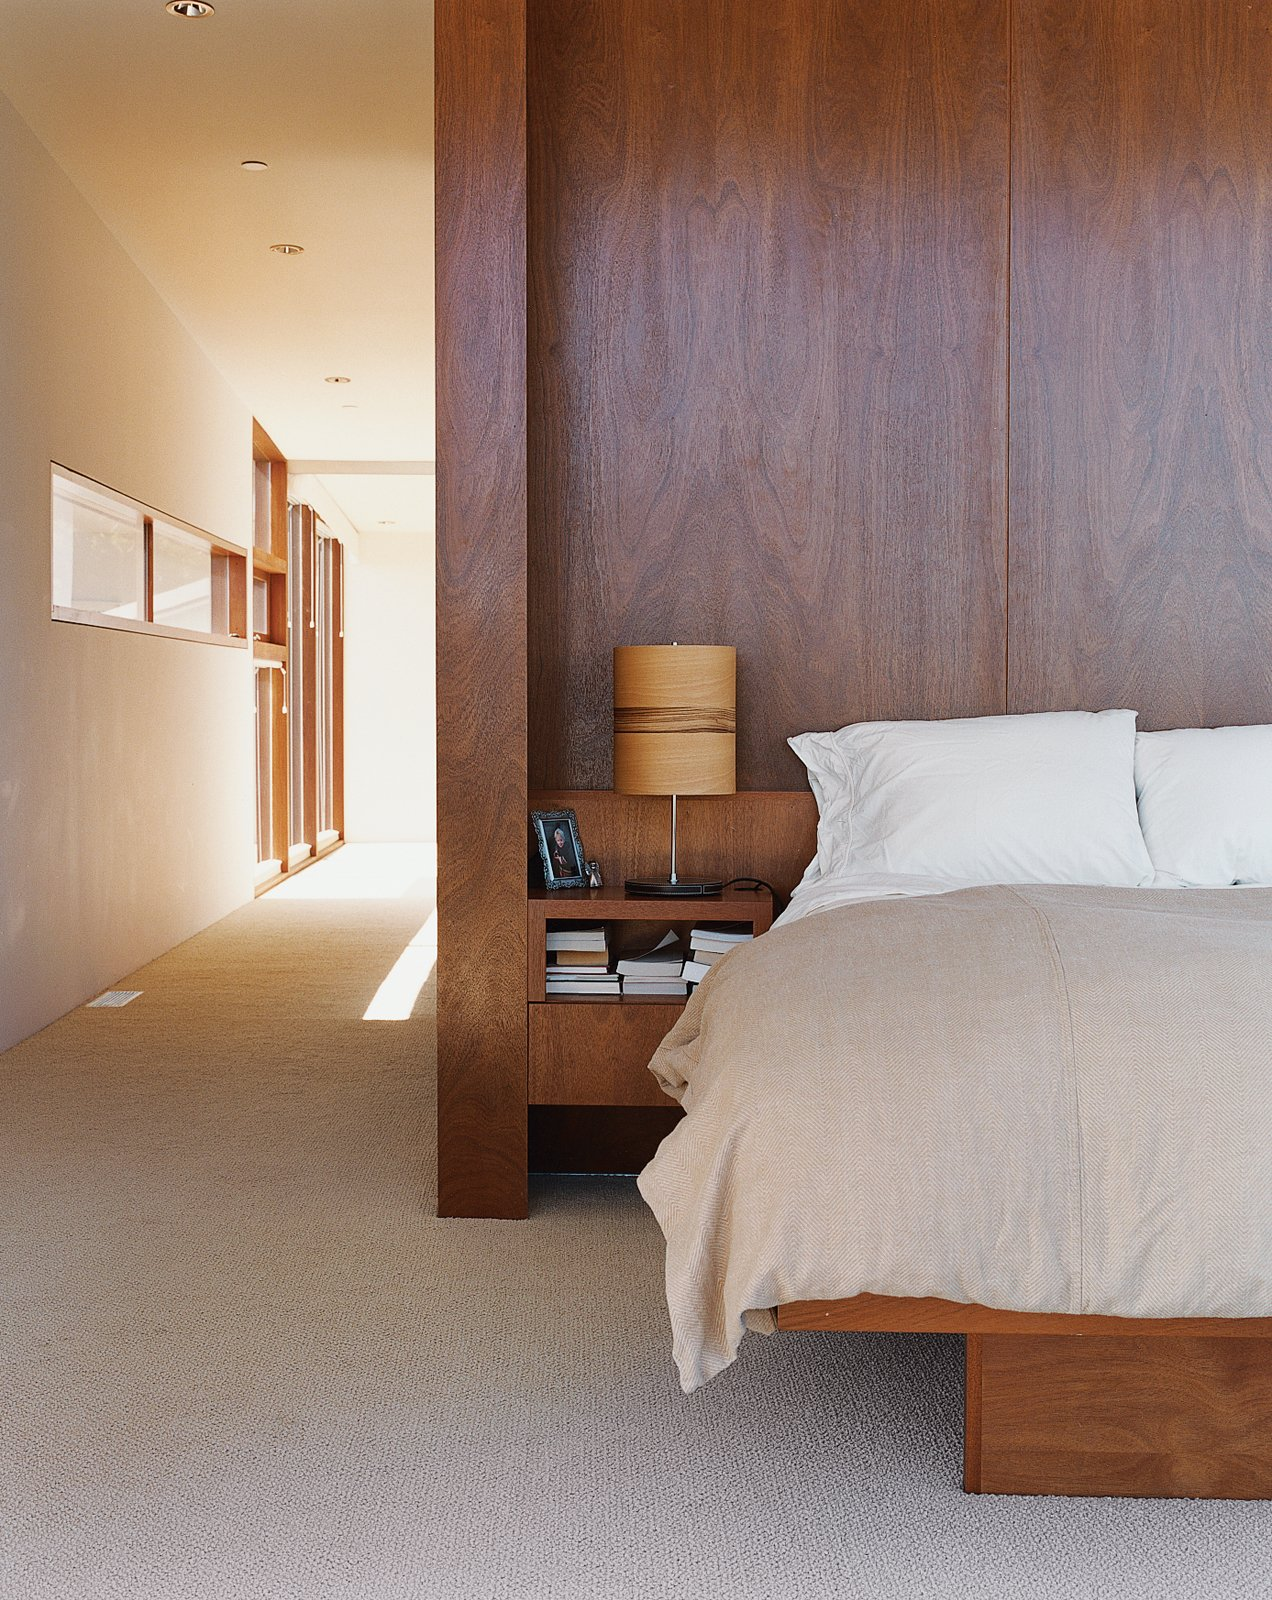 The master bedroom interior is finished with cherry wood. Tagged: Bedroom, Bed, Storage, Table Lighting, and Carpet Floor.  Photo 4 of 5 in Untraditional in Marin